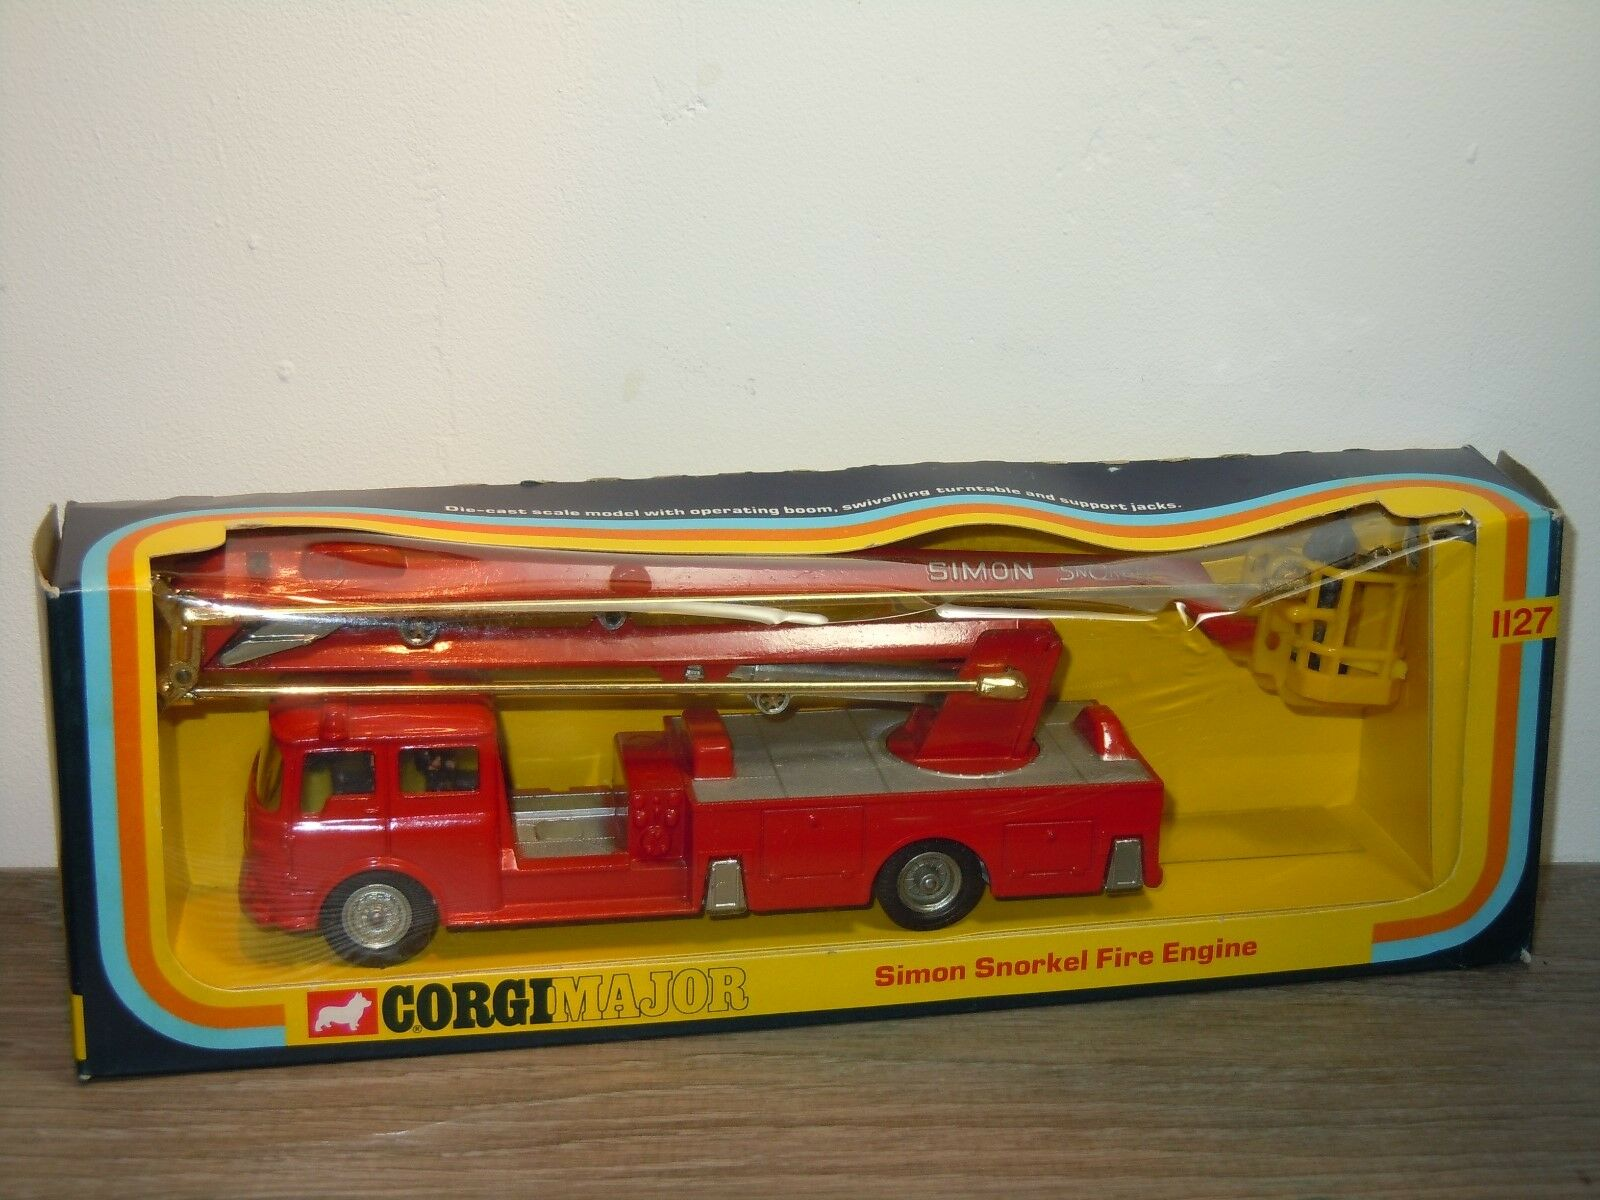 Simon Snorkel Fire Engine - Corgi Major Toys Toys Toys 1127 England in Box 34616 d4f395